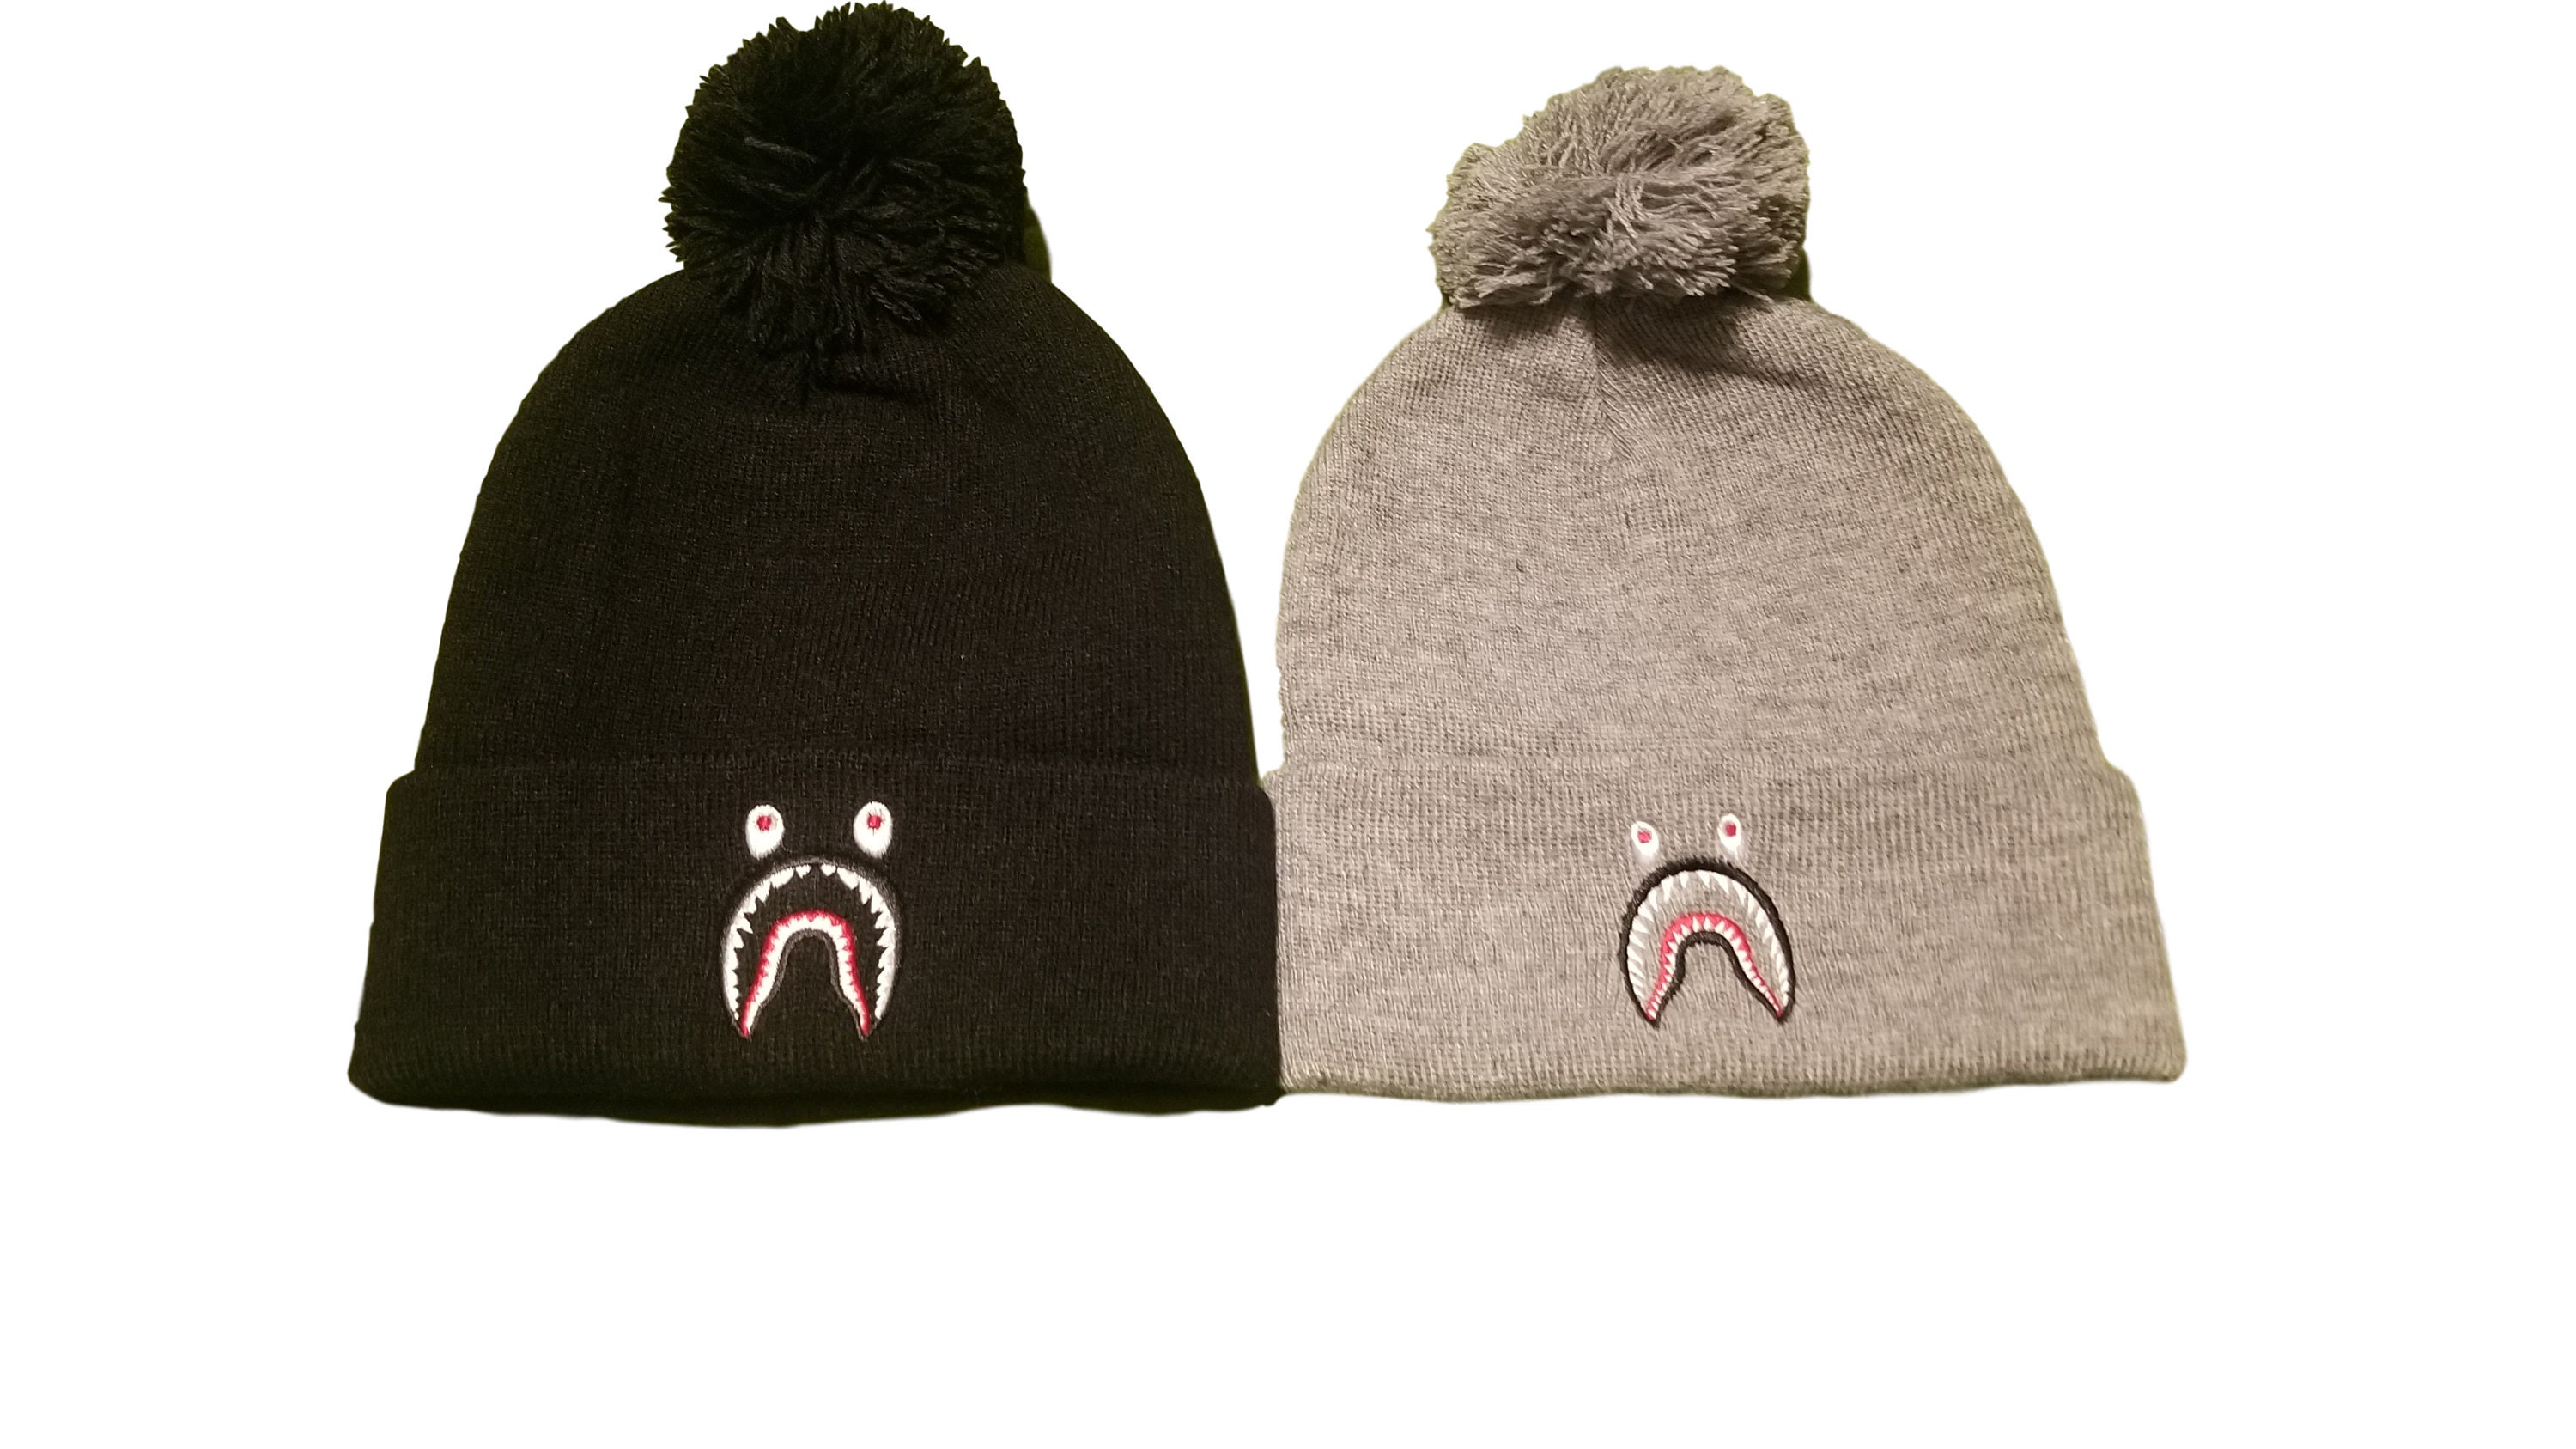 New BAPE Shark Mouth Logo Beanie Hat  813b68e70af